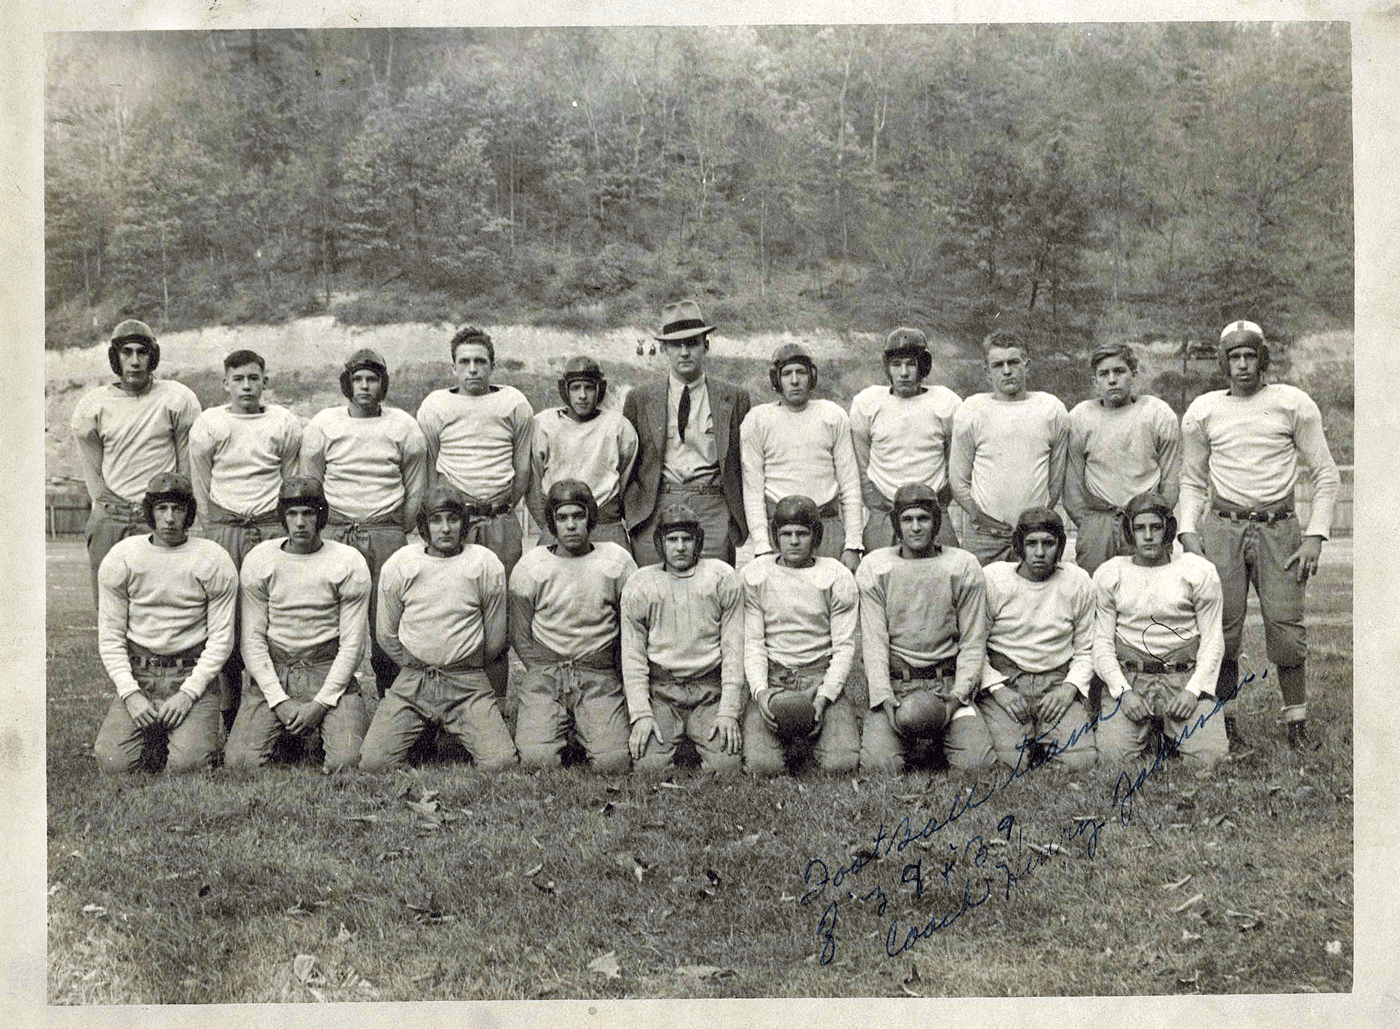 The 1938-9 Dante Central High School football team seems to be one of Southwest Virginia's first integrated sports teams.